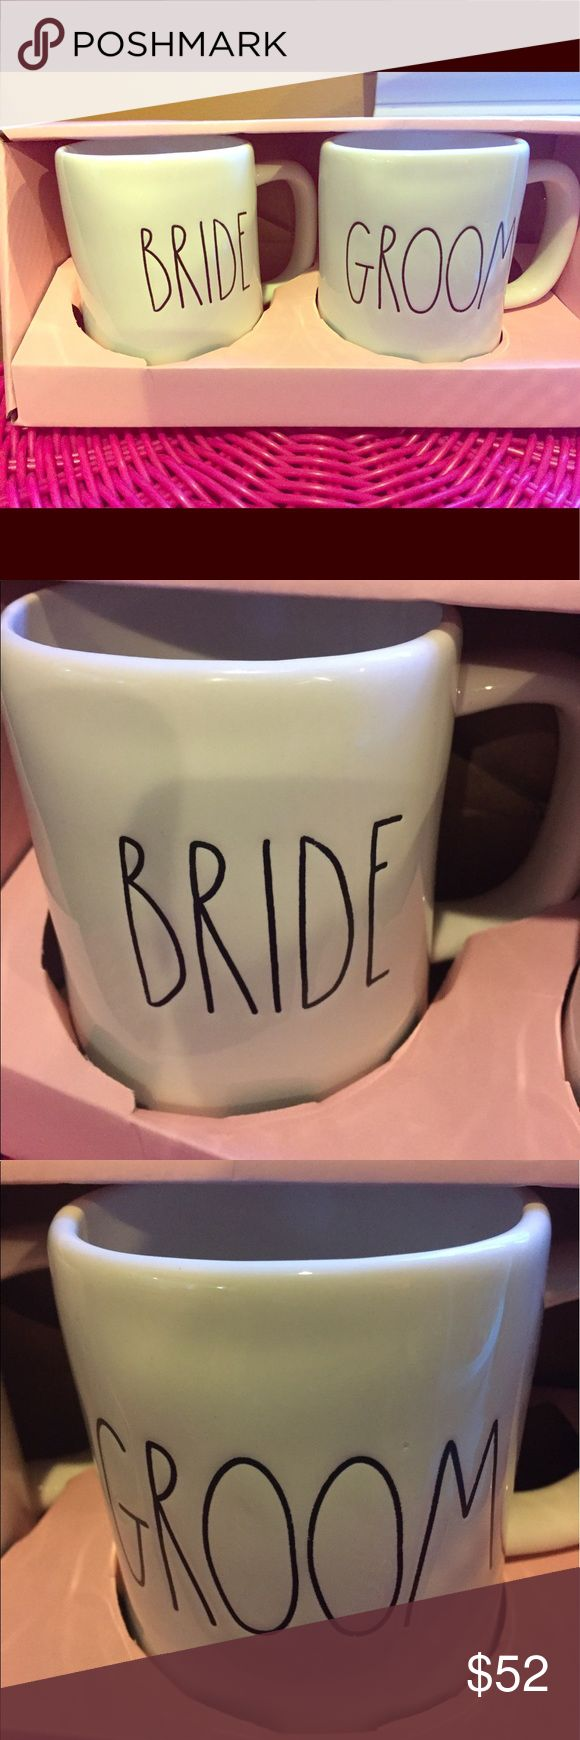 Rae Dunn Bride Groom Mugs Boxed Set Big Letter Rae Dunn Boxed Set Bride Groom Big letter mugs Set of 2 mugs  New  Perfect for shower or anniversary wedding present  Share your Rae Dunn with your guy Will bundle    Rae Dunn clay  Wedding Teacher Gift Anniversary Rae Dunn Other